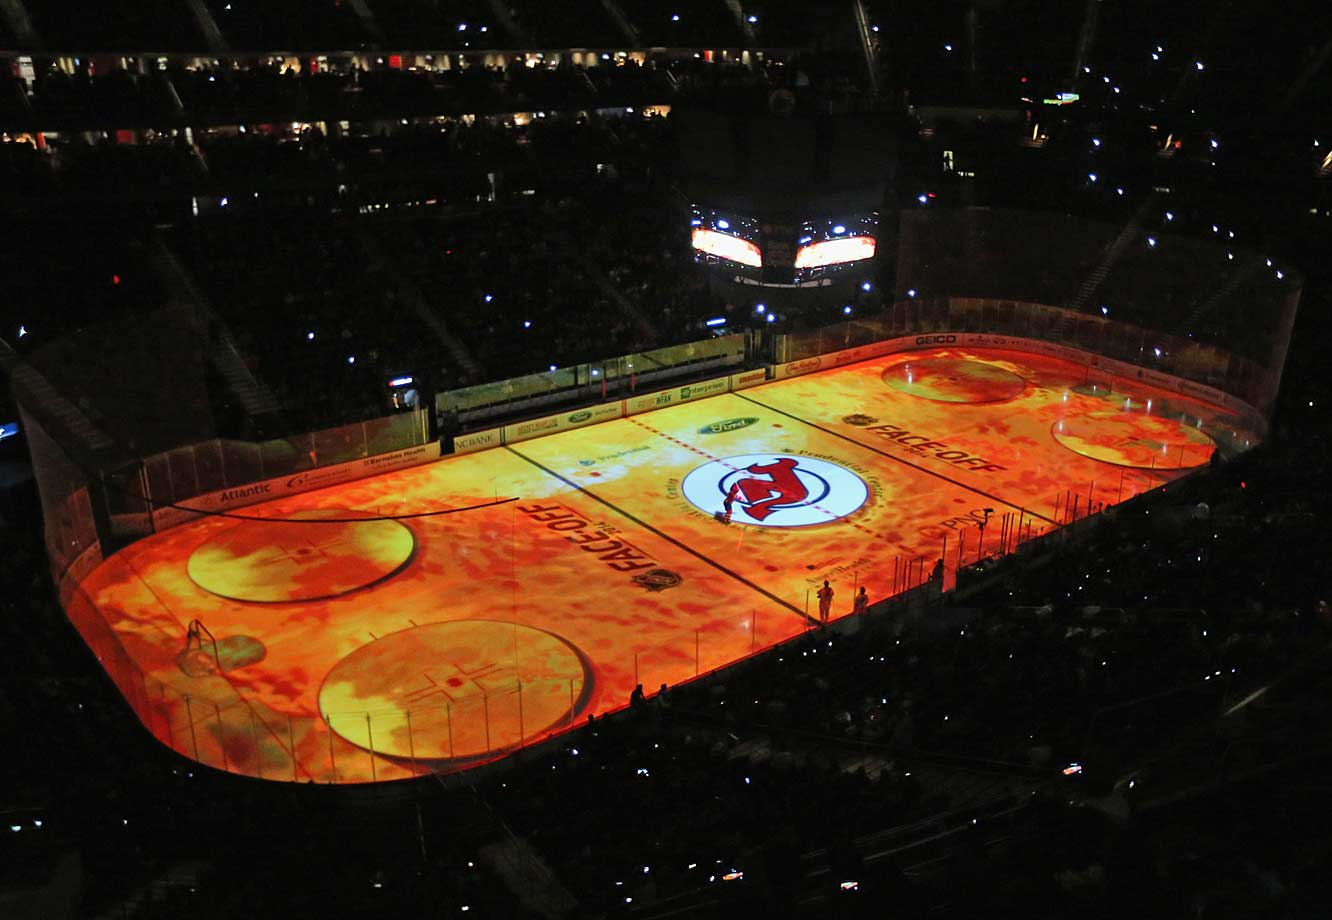 Speaking of barn burners, the Devils unveiled their spiffy new 3D projection system before their home opener against the Sharks at the Prudential Center in bucolic Newark, NJ, on Oct. 18.